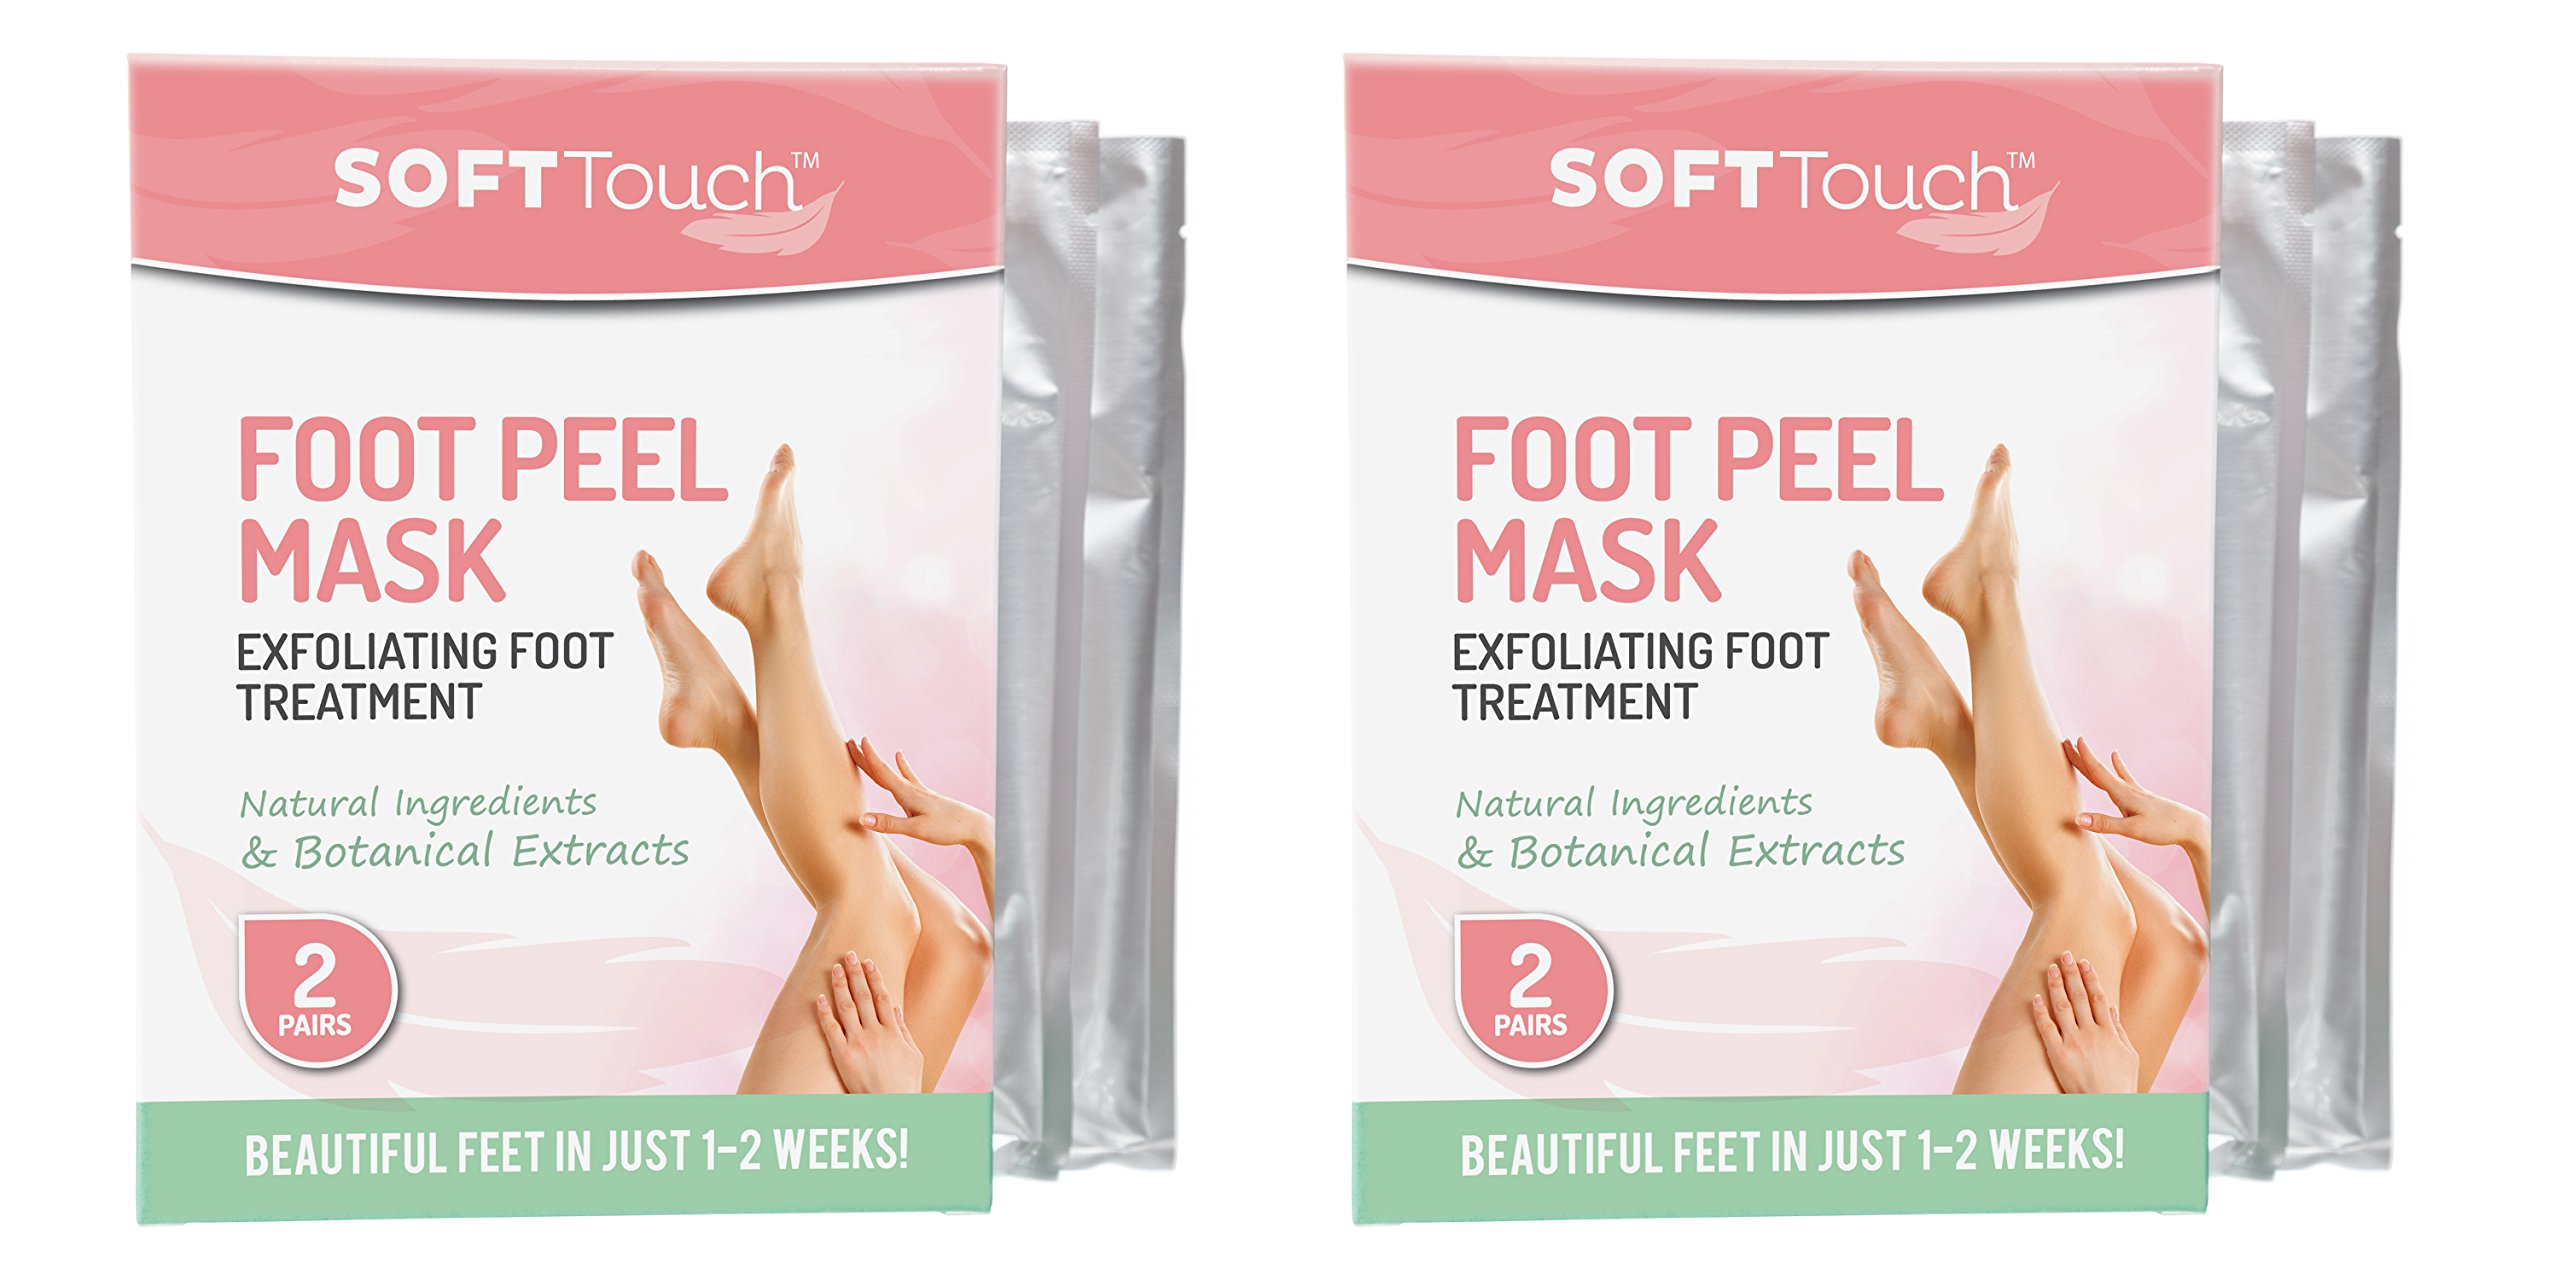 Soft Touch, Foot Peel Foot Mask (4 Pairs, 2 boxes) Exfoliating Callus Remover